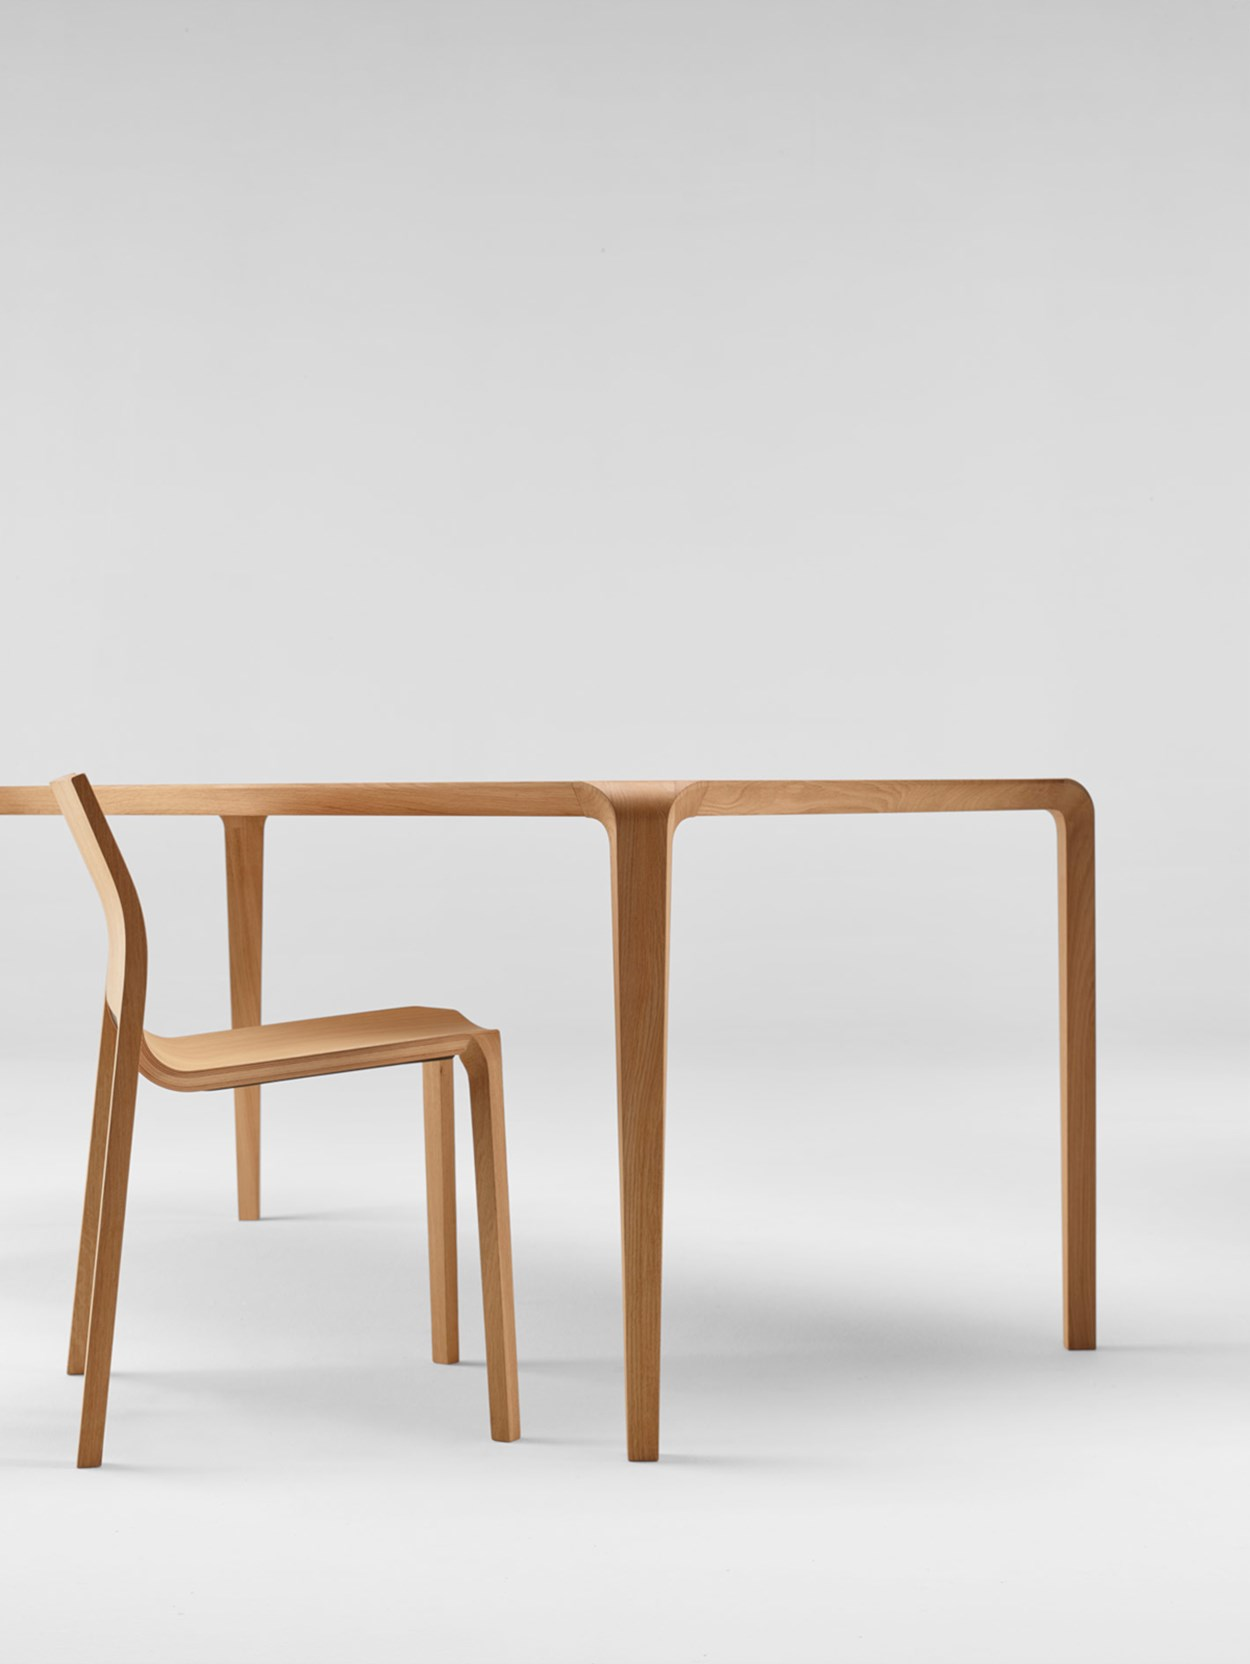 ondarreta-silu-table-chairs-02.jpg